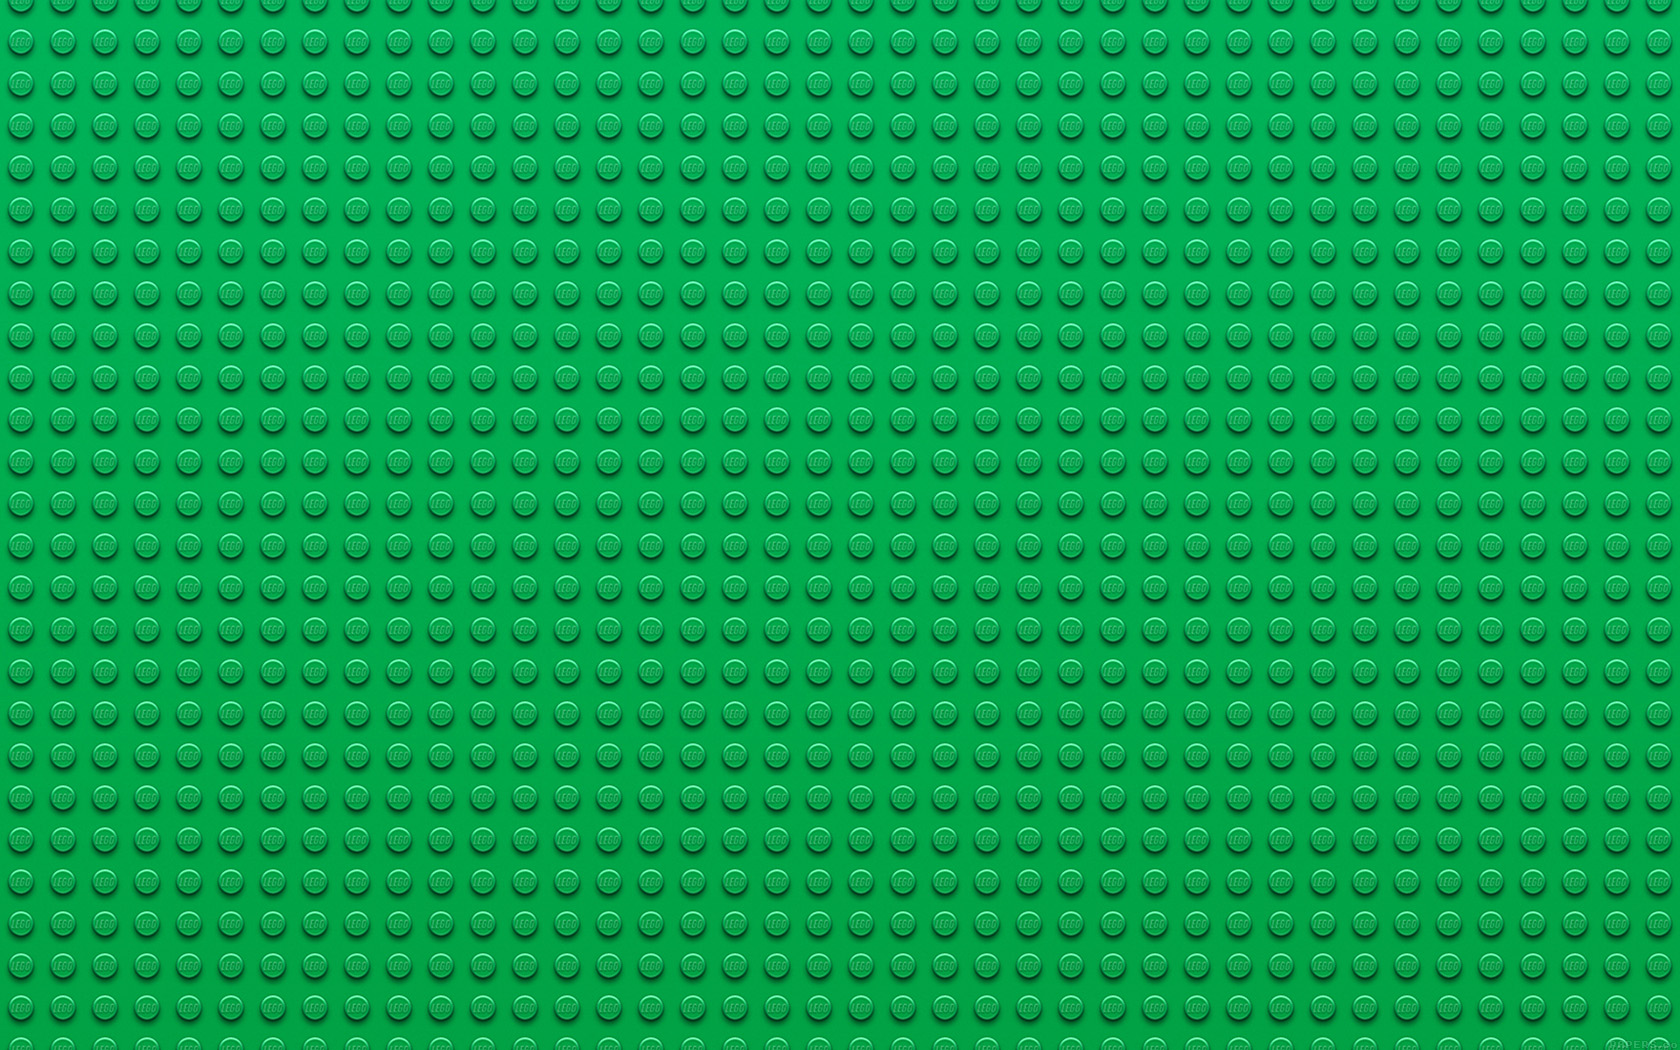 Wallpaper For Ipad Fall Vf30 Lego Toy Green Block Pattern Papers Co